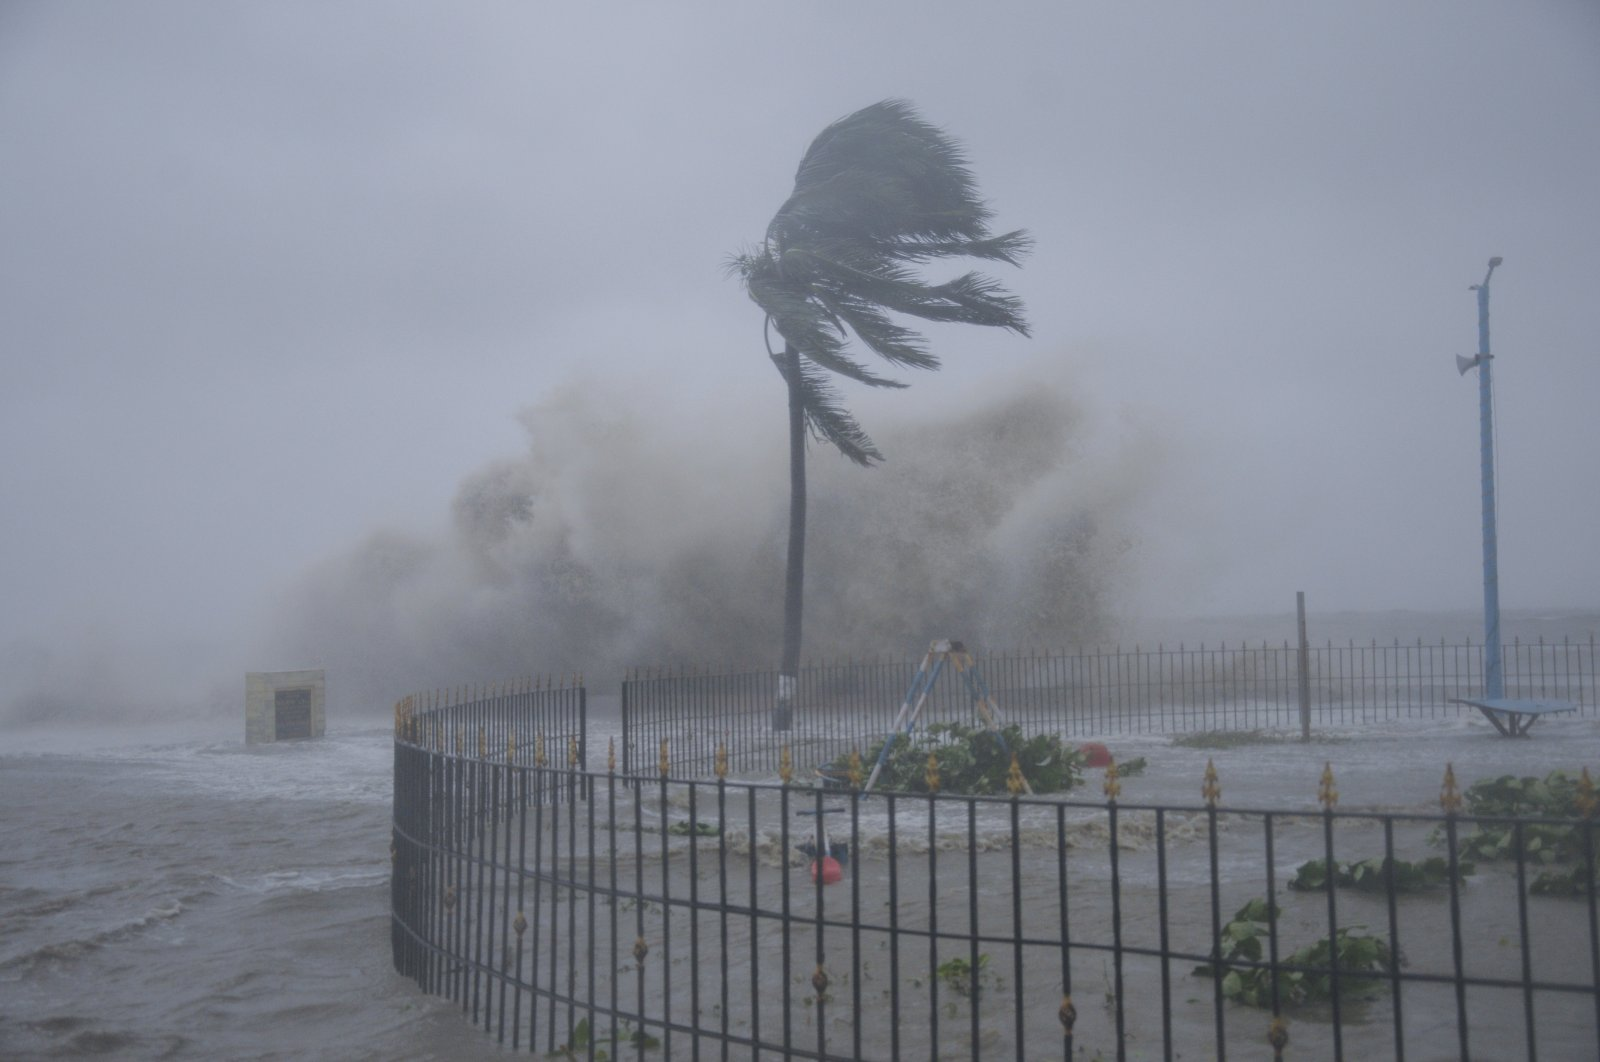 Heavy winds and sea waves hit the shore at Digha beach on the Bay of Bengal coast as Cyclone Yaas intensifies in West Bengal state, India, May 26, 2021. (AP Photo)